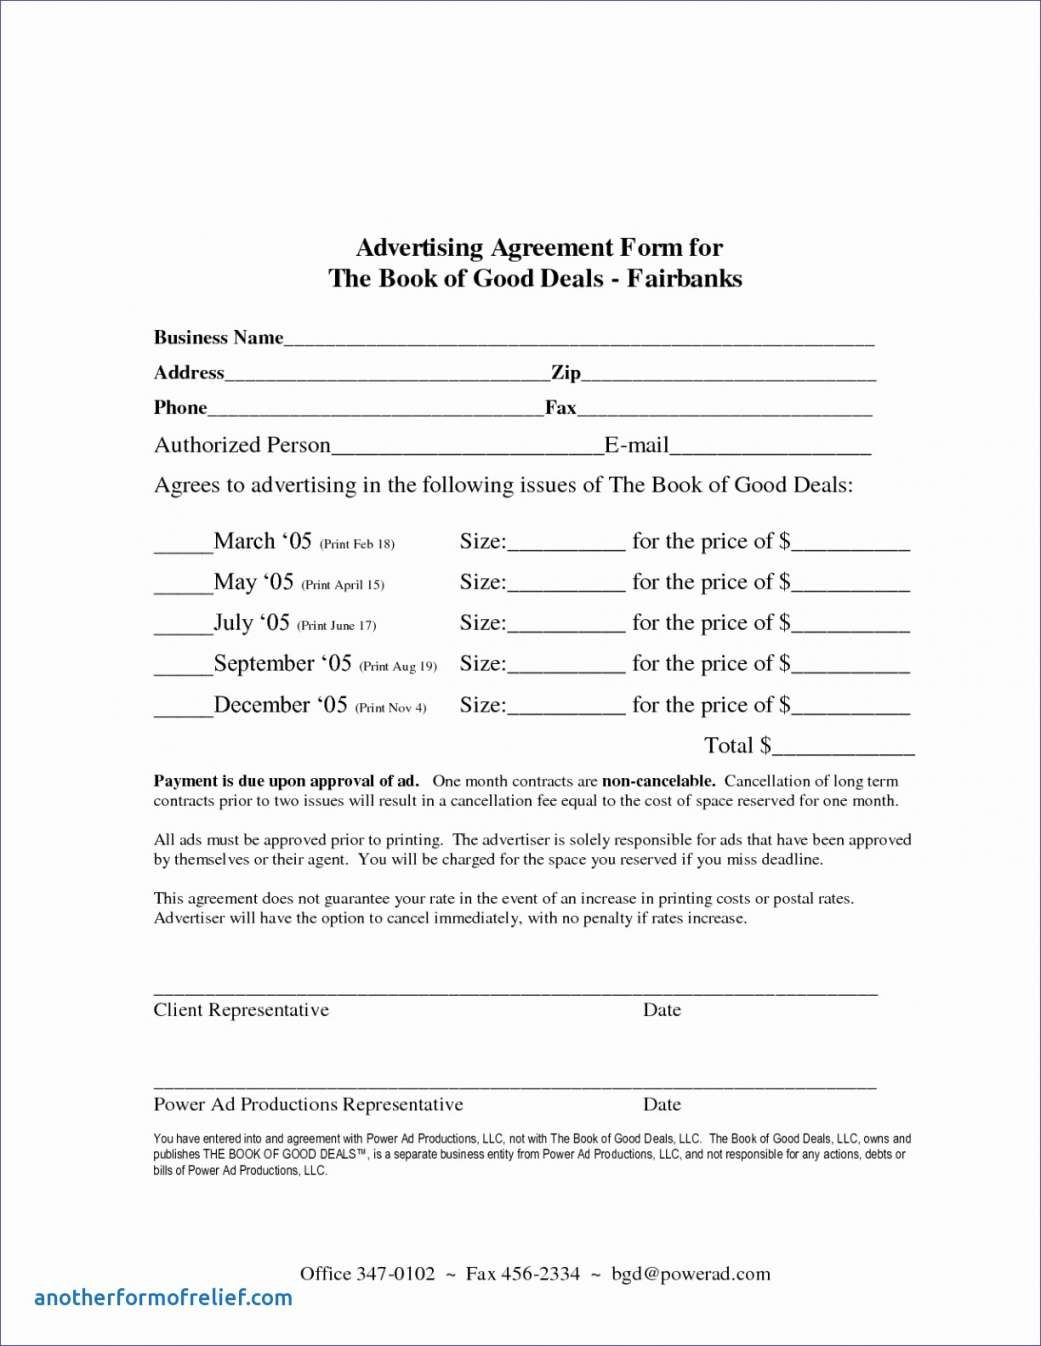 Example Of Online Advertising Agreement Template Free For You Pertaining To Free Online Advertising Agreement Template